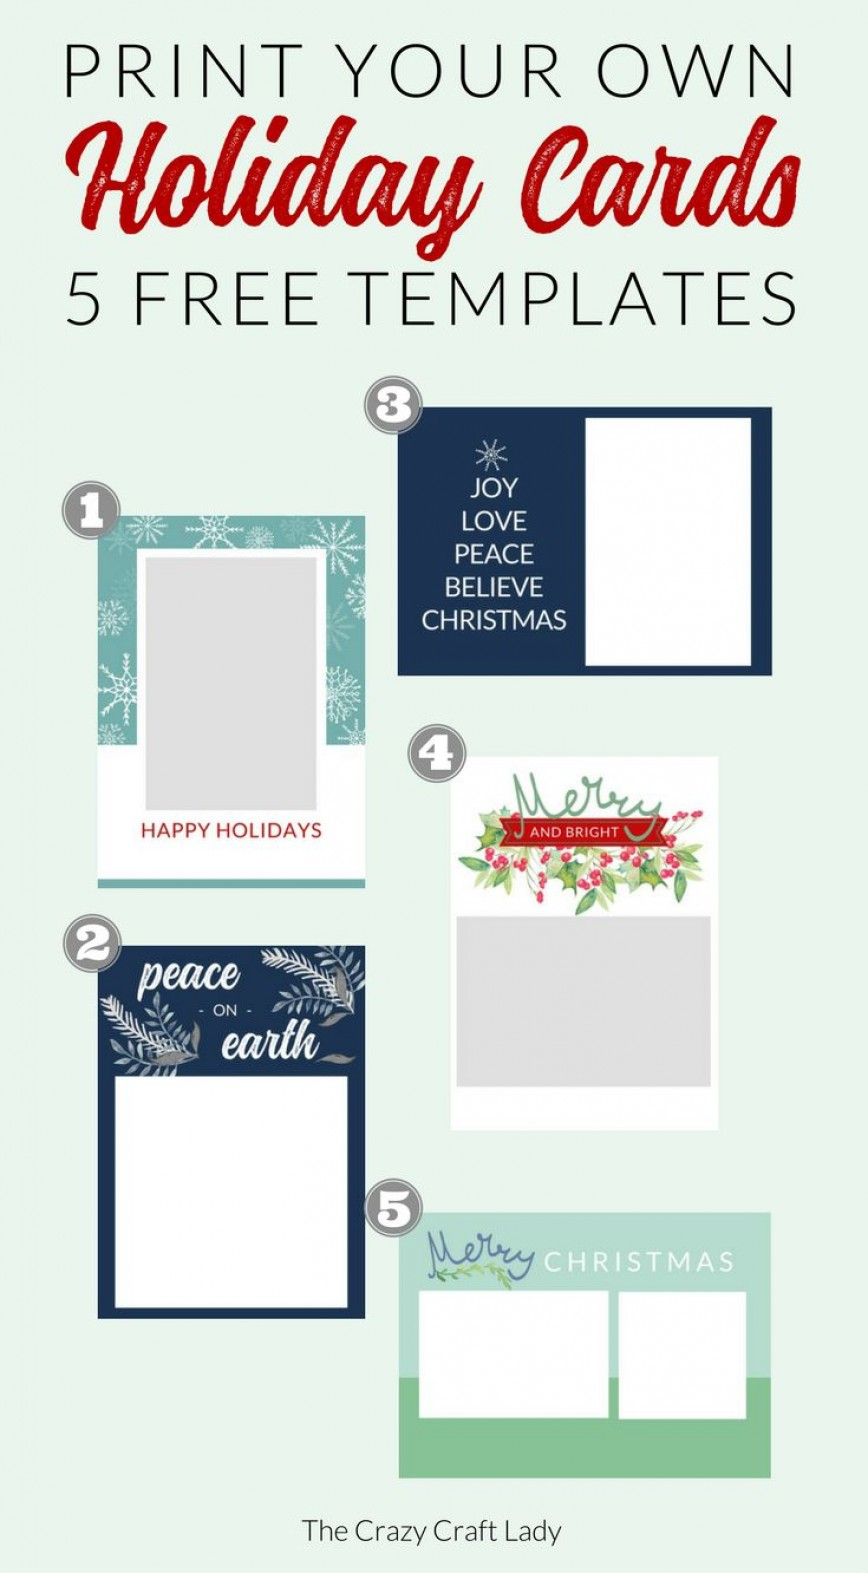 007 Fantastic Free Download Holiday Card Template Concept 868